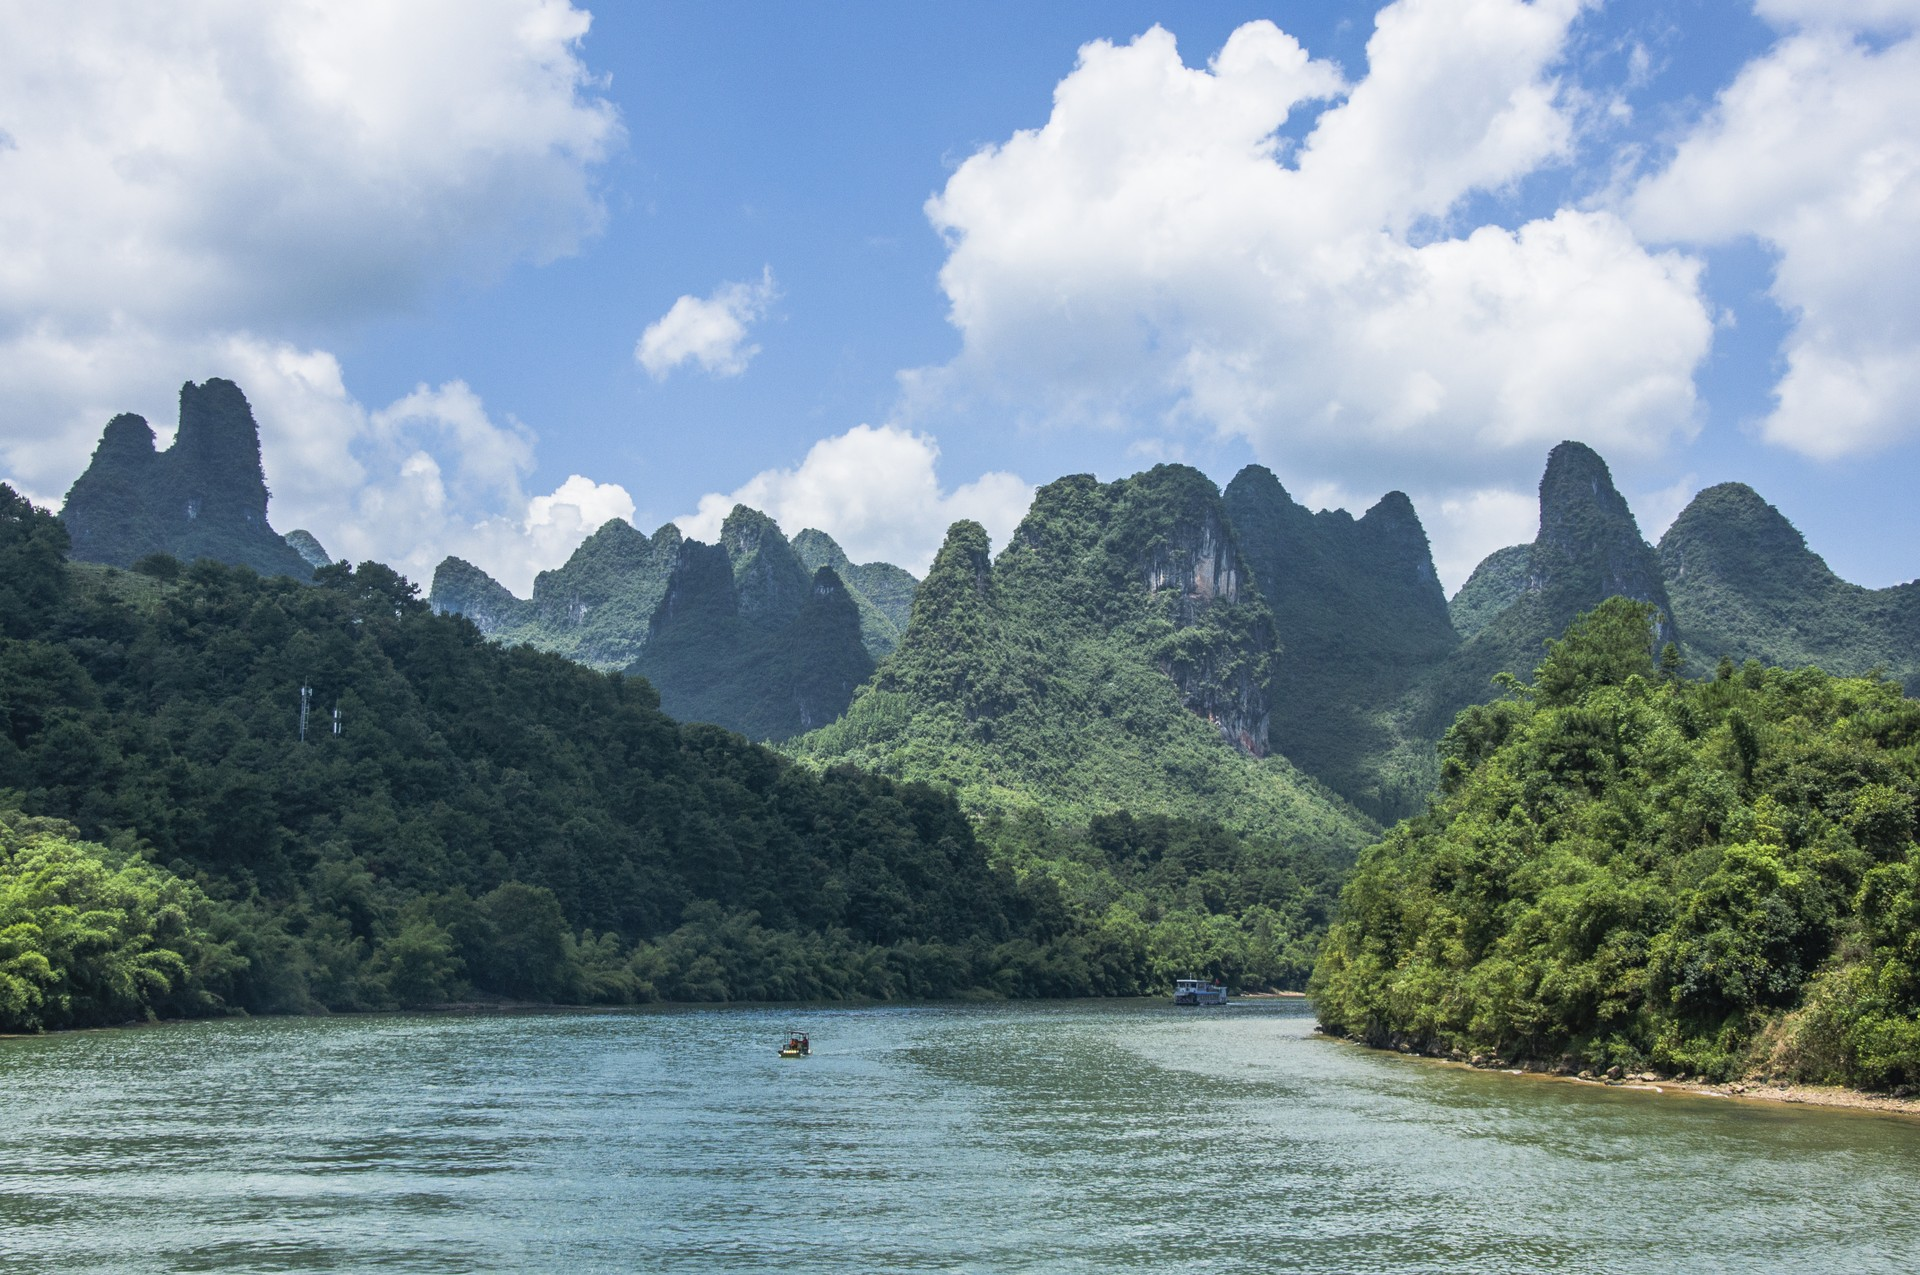 View of Li River in Guilin, China